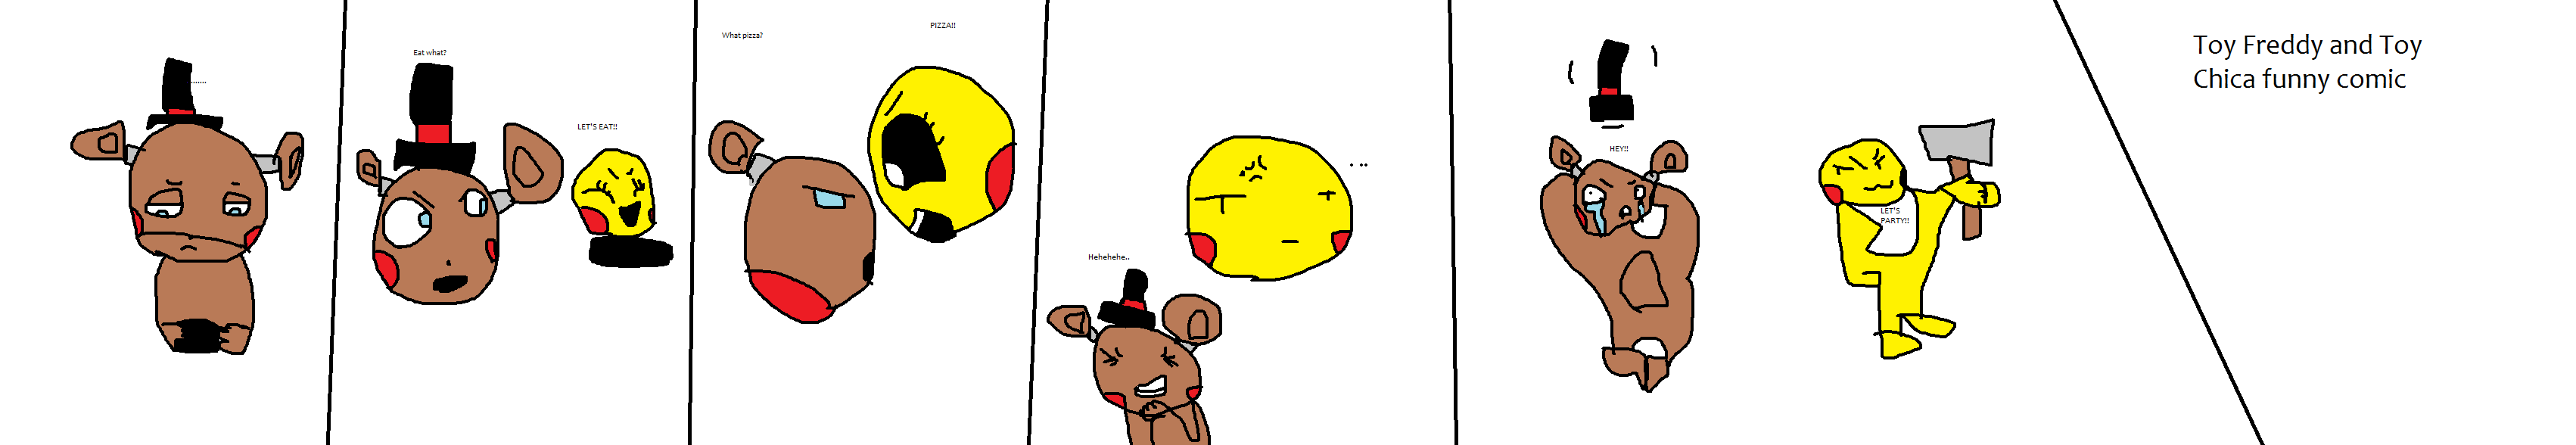 Toy Freddy and Toy Chica funny